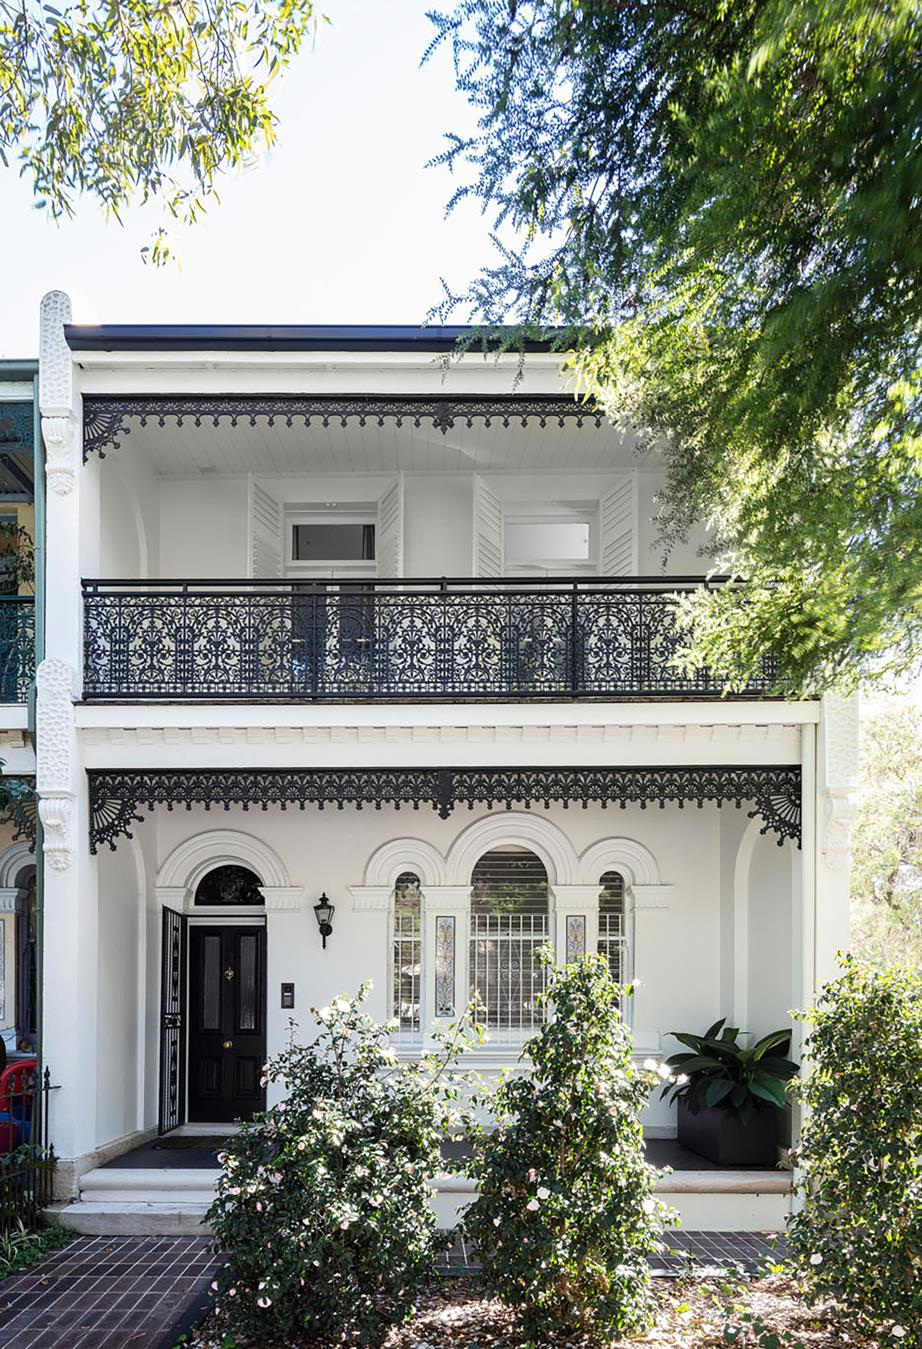 A Revived Victorian Terrace With A Modern Revamp In 2020 Victorian Terrace Terrace House Exterior Victorian Cottage